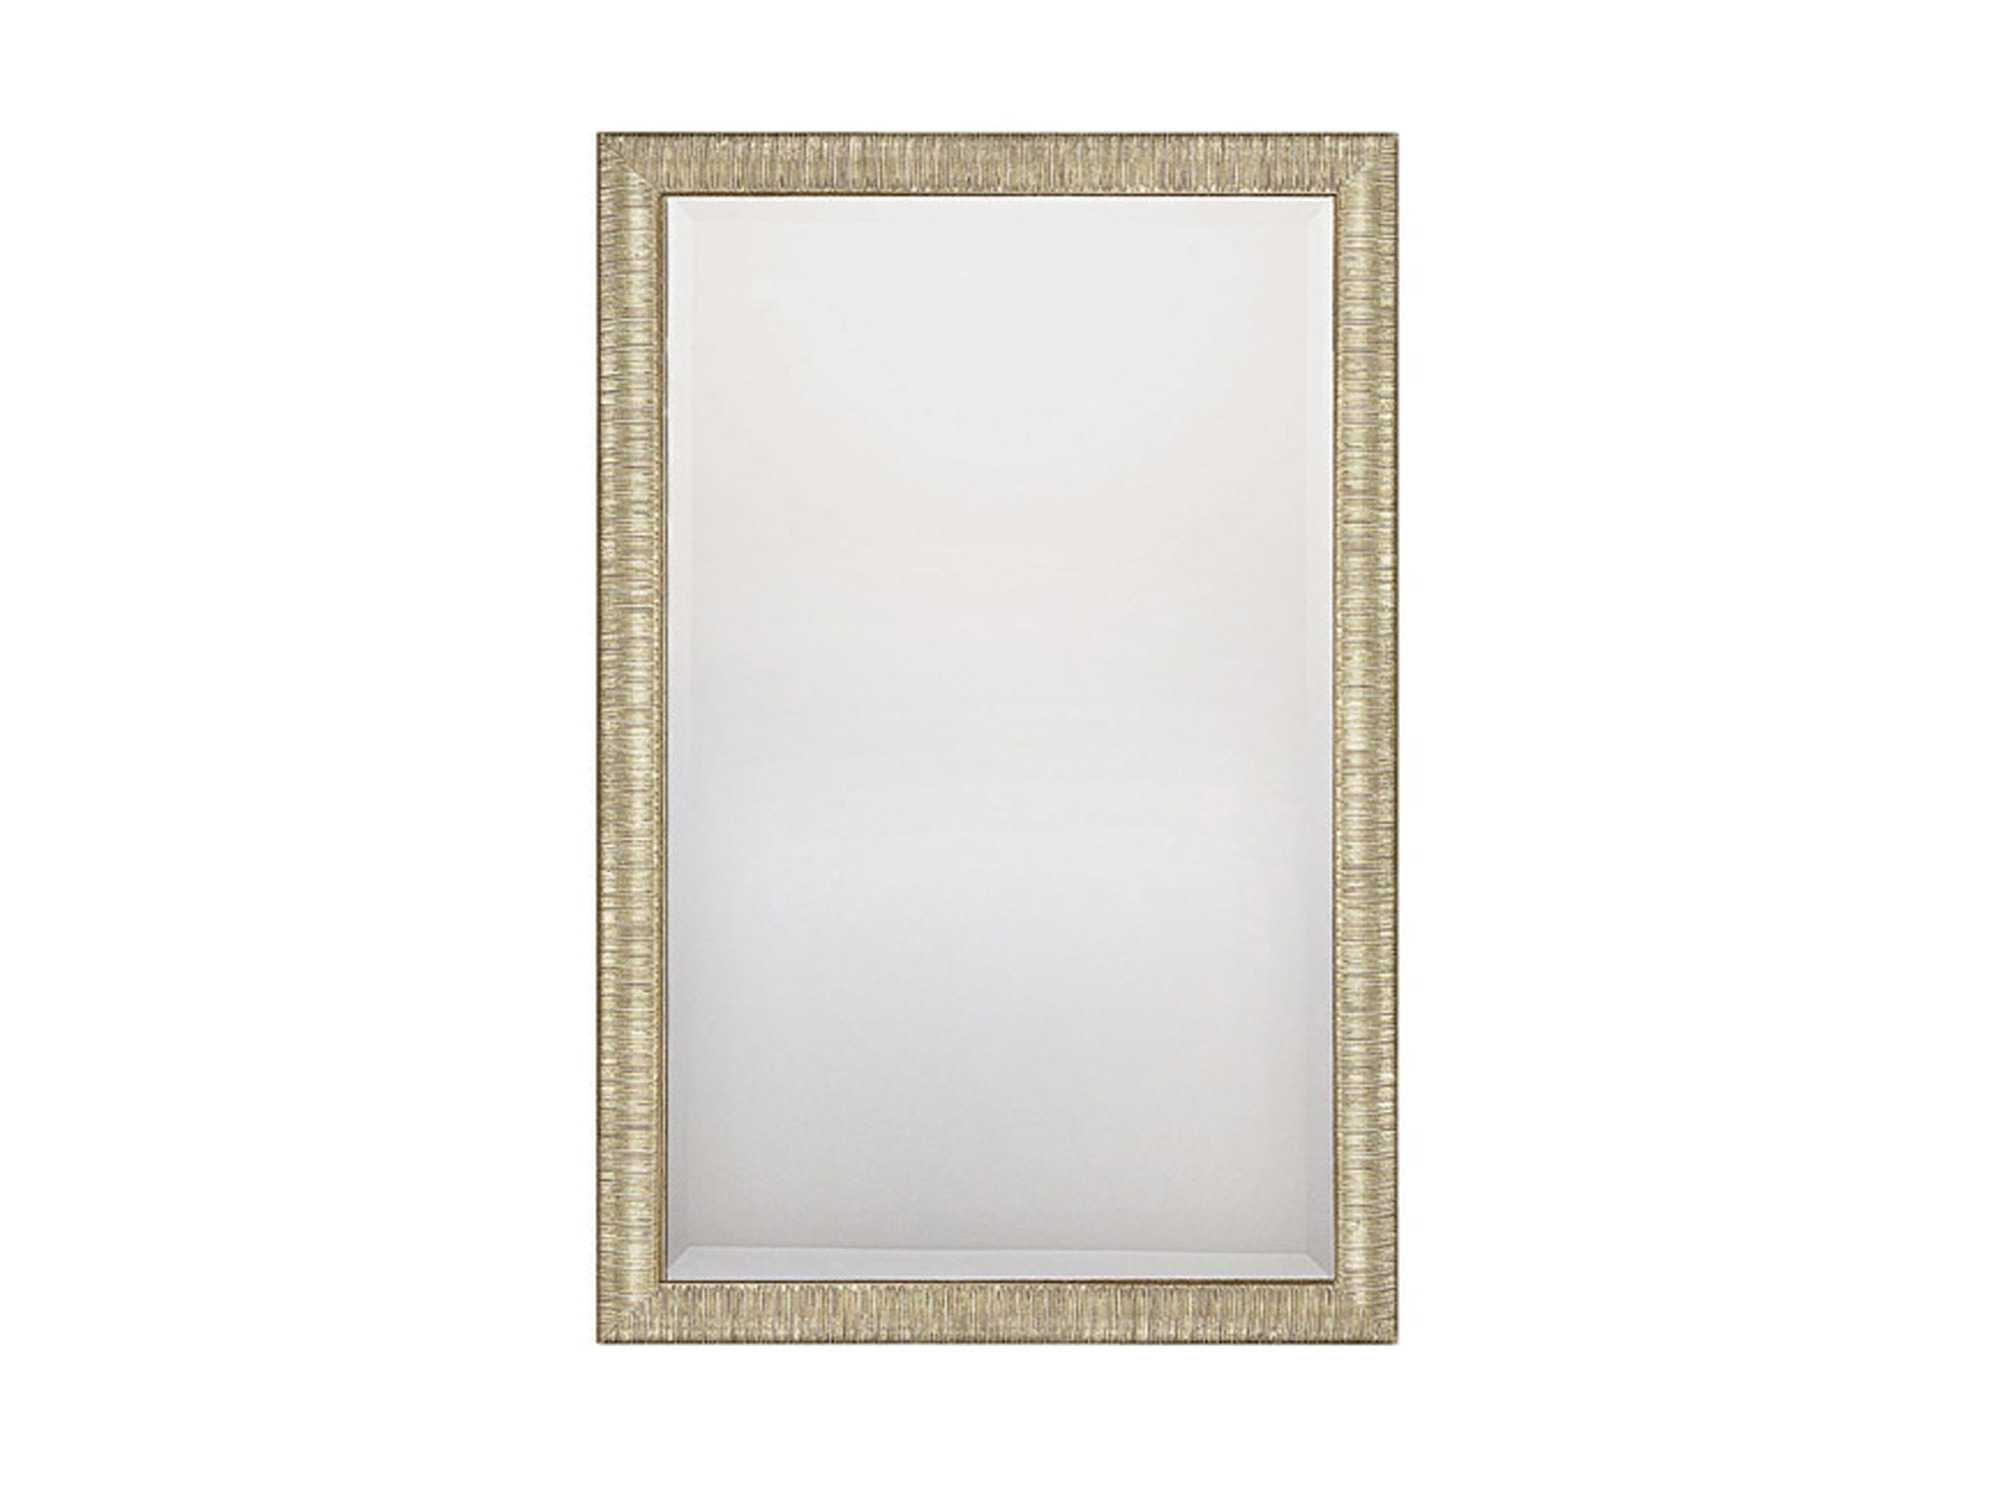 Fashionable Capital Lighting 24 X 36 Rectangular Beveled Striated Silver & Gold Wall Mirror In 24 X 36 Wall Mirrors (View 7 of 20)